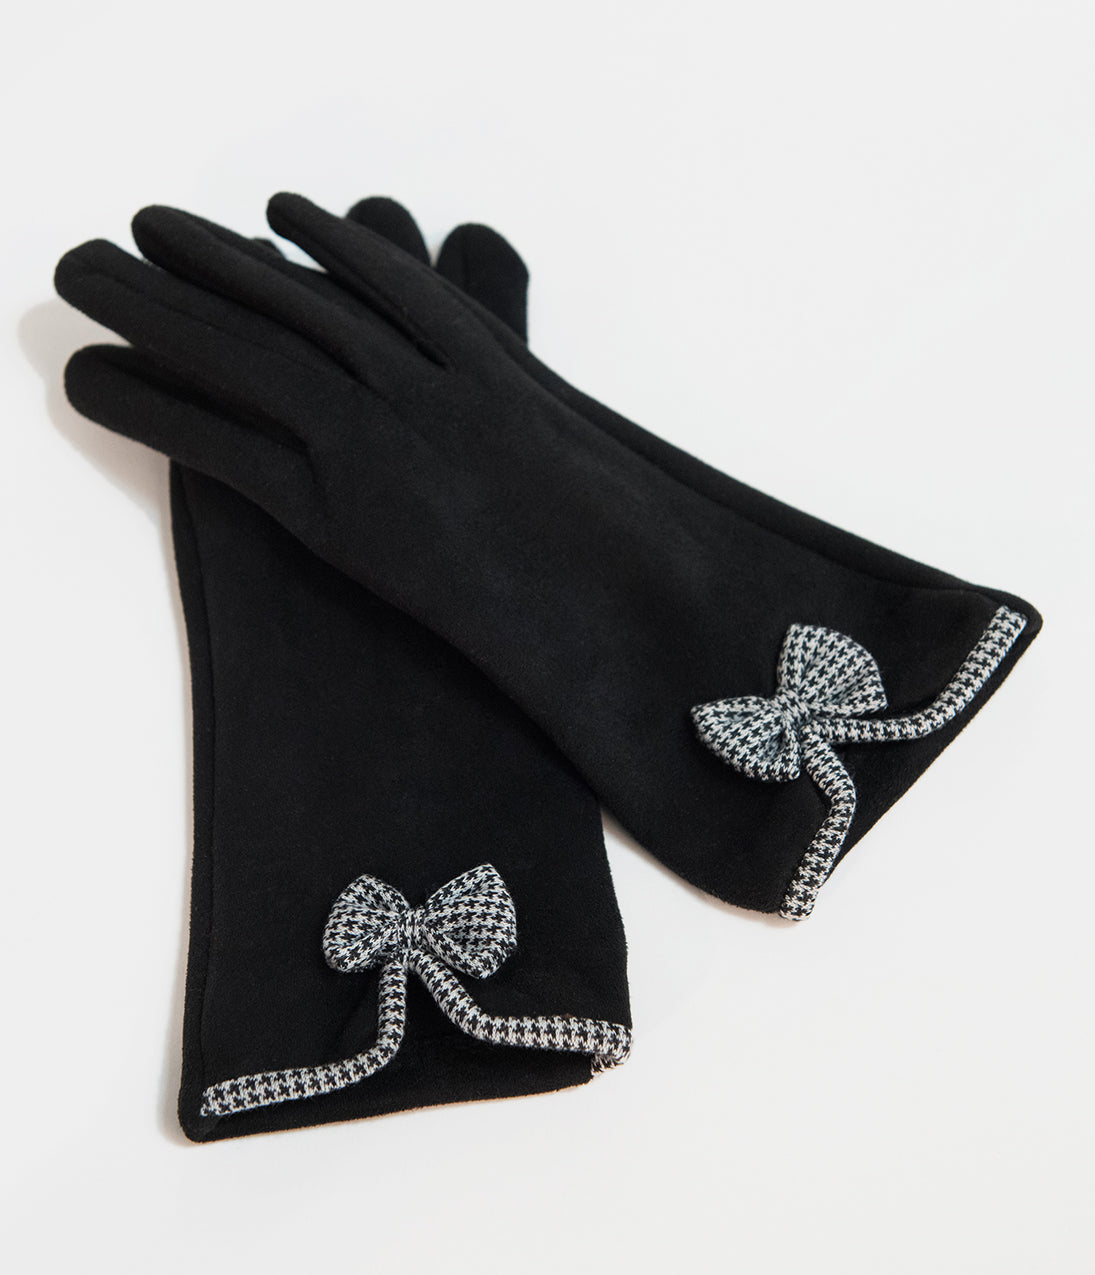 Vintage Style Gloves- Long, Wrist, Evening, Day, Leather, Lace Unique Vintage Black Suede  Houndstooth Bow Wrist Gloves $20.00 AT vintagedancer.com